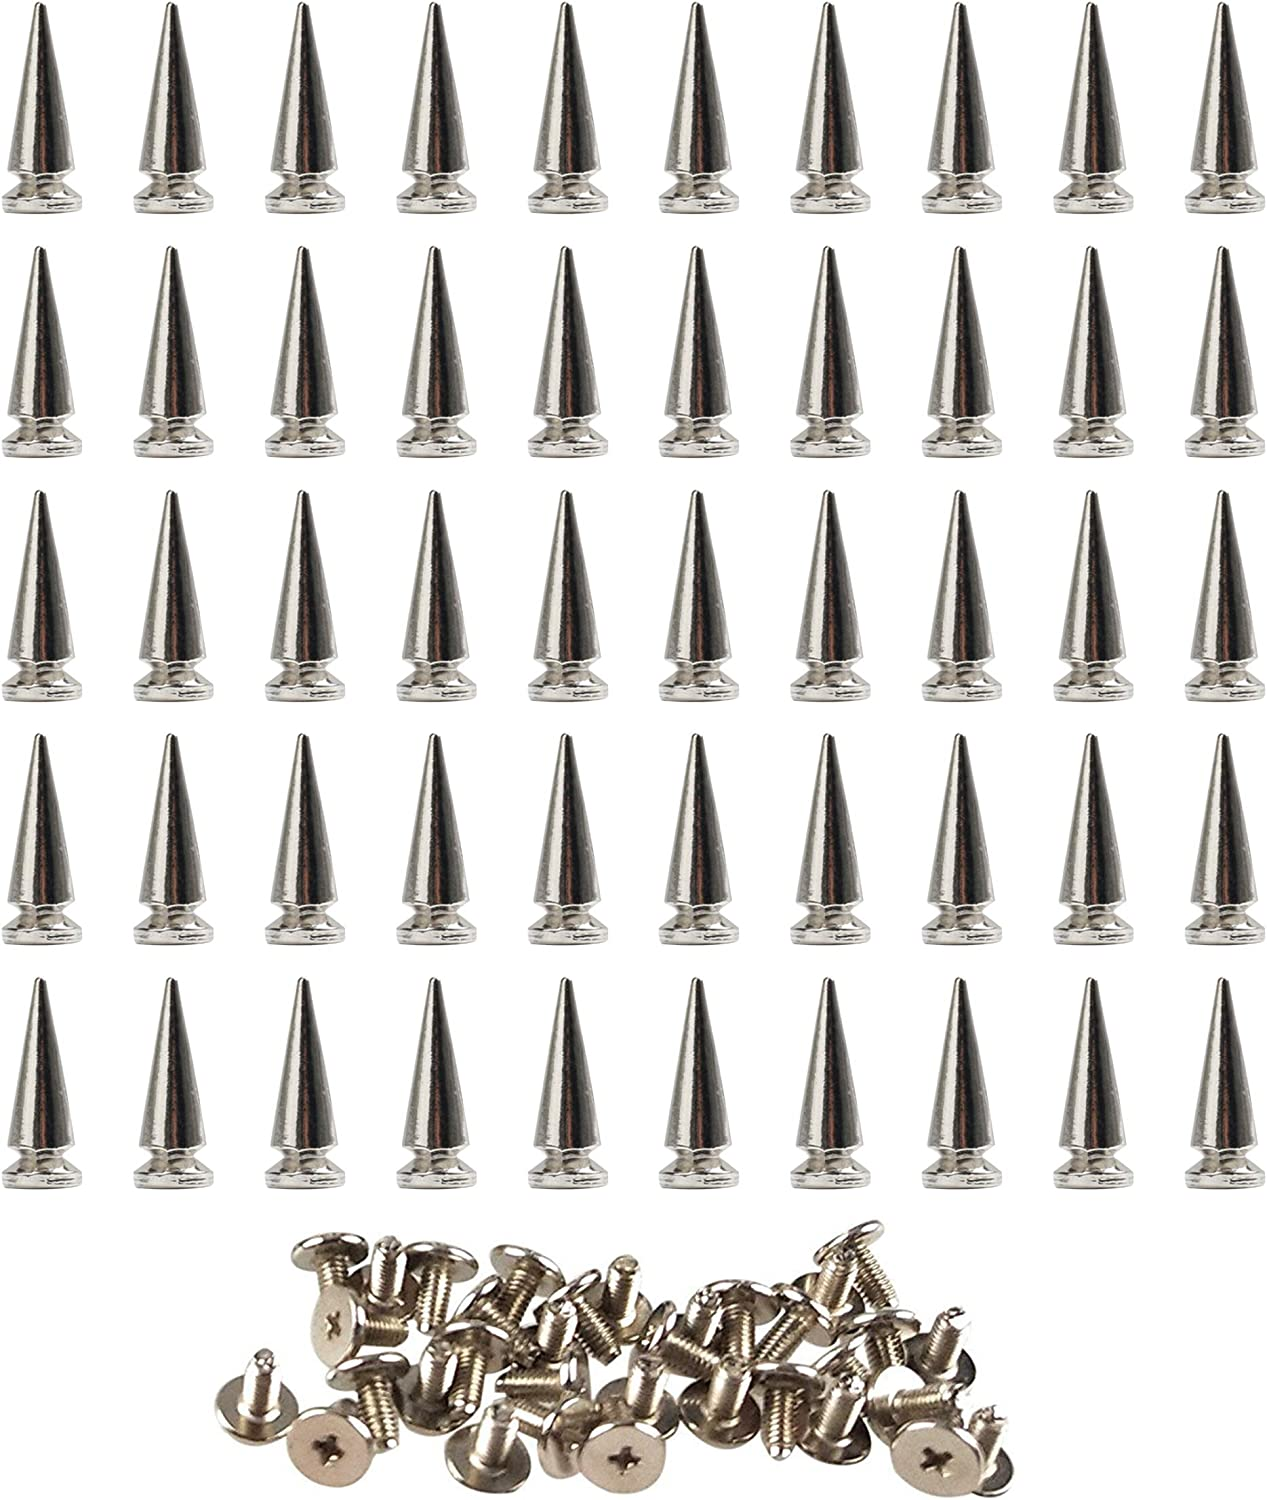 10 Pcs 26mm Silvery Metal Bullet Spikes Studs Rivets Cone Screwback Spots Trendy